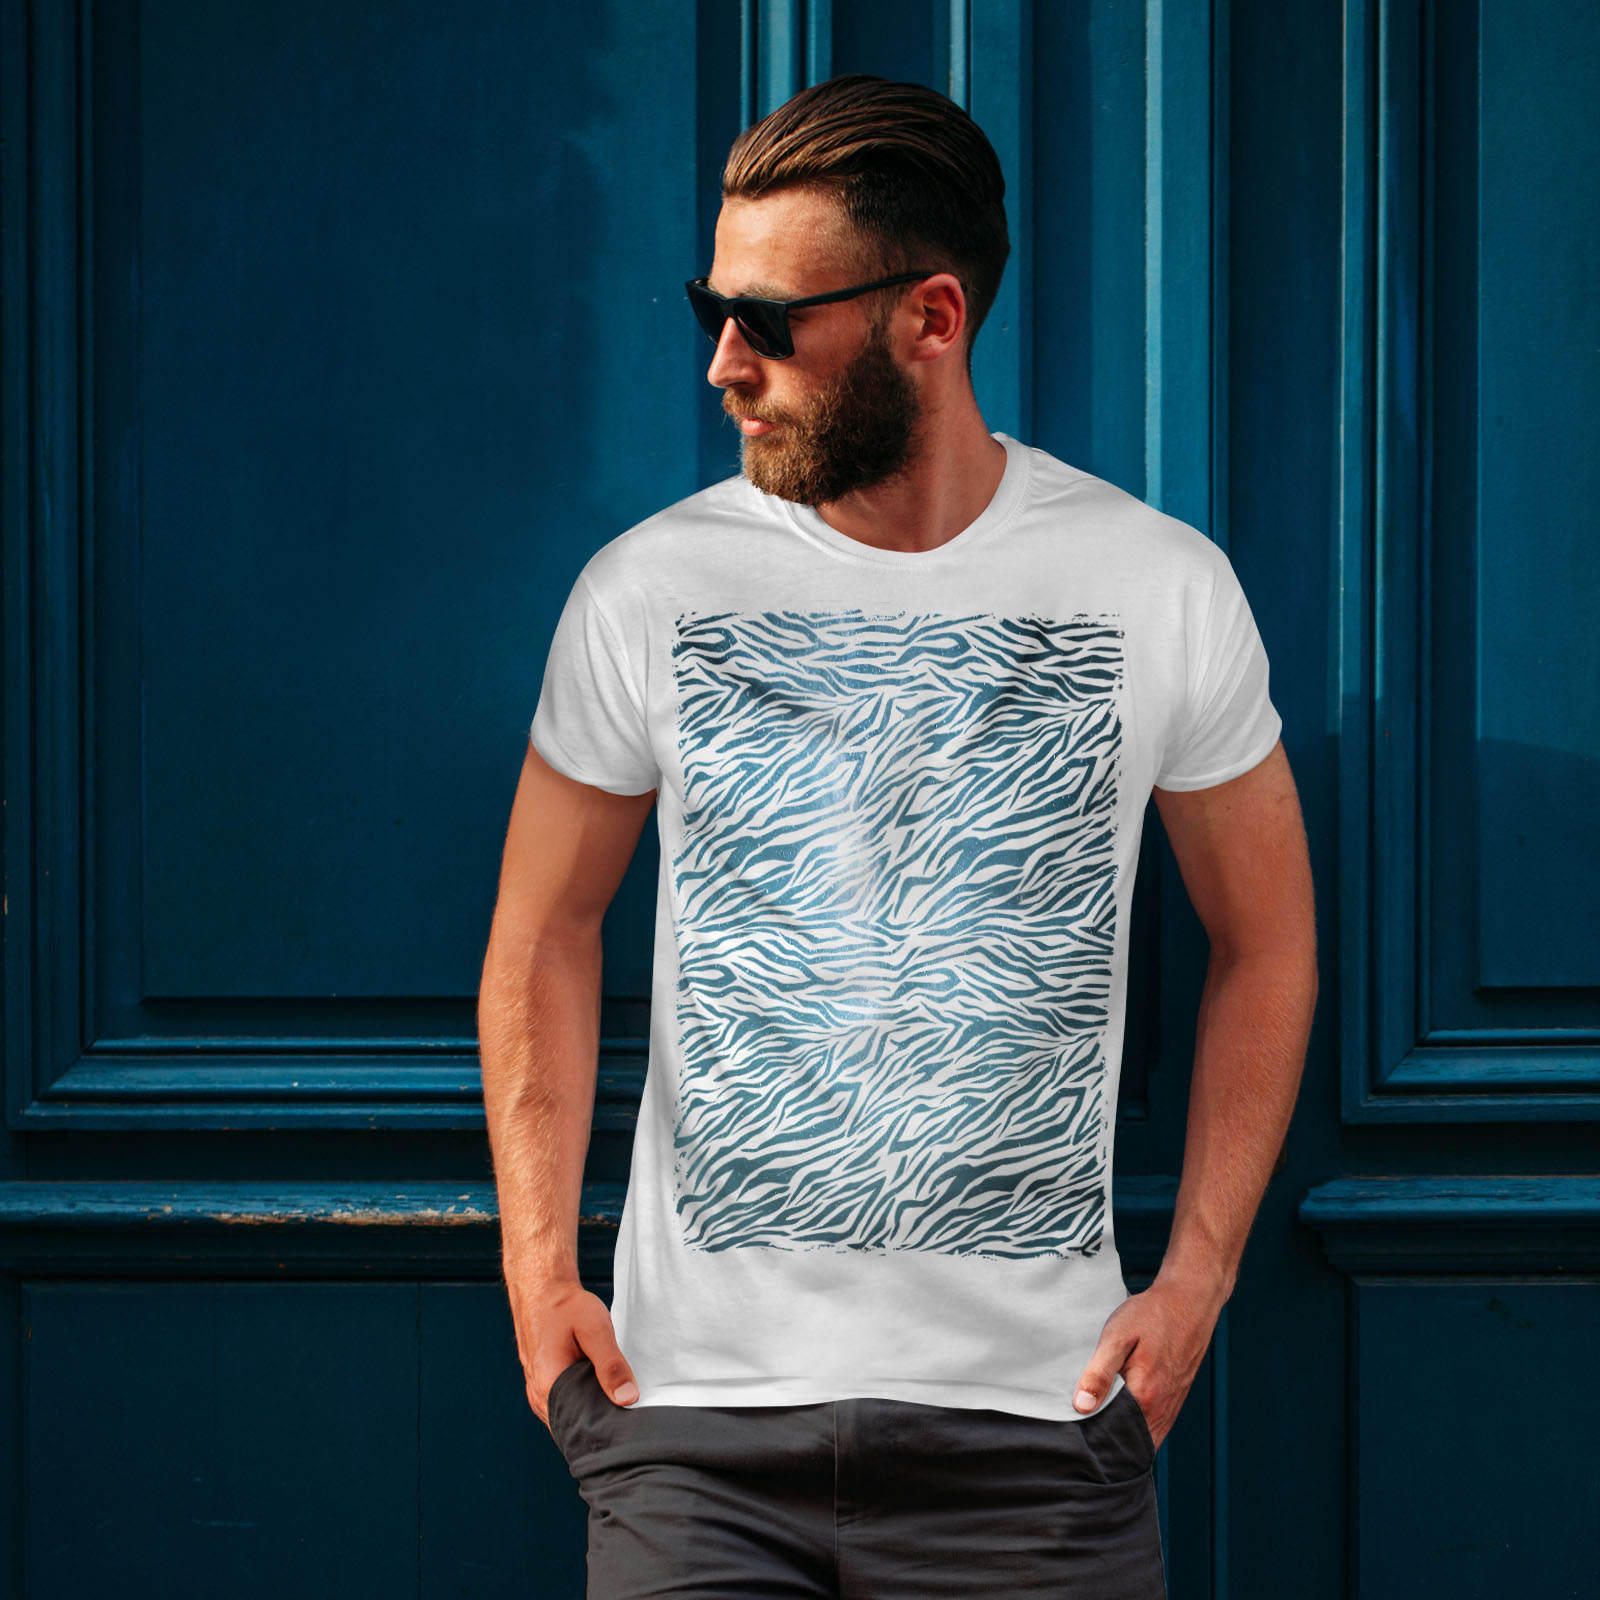 Wellcoda-Fashion-Pattern-Mens-T-shirt-Animal-Graphic-Design-Printed-Tee miniatuur 10